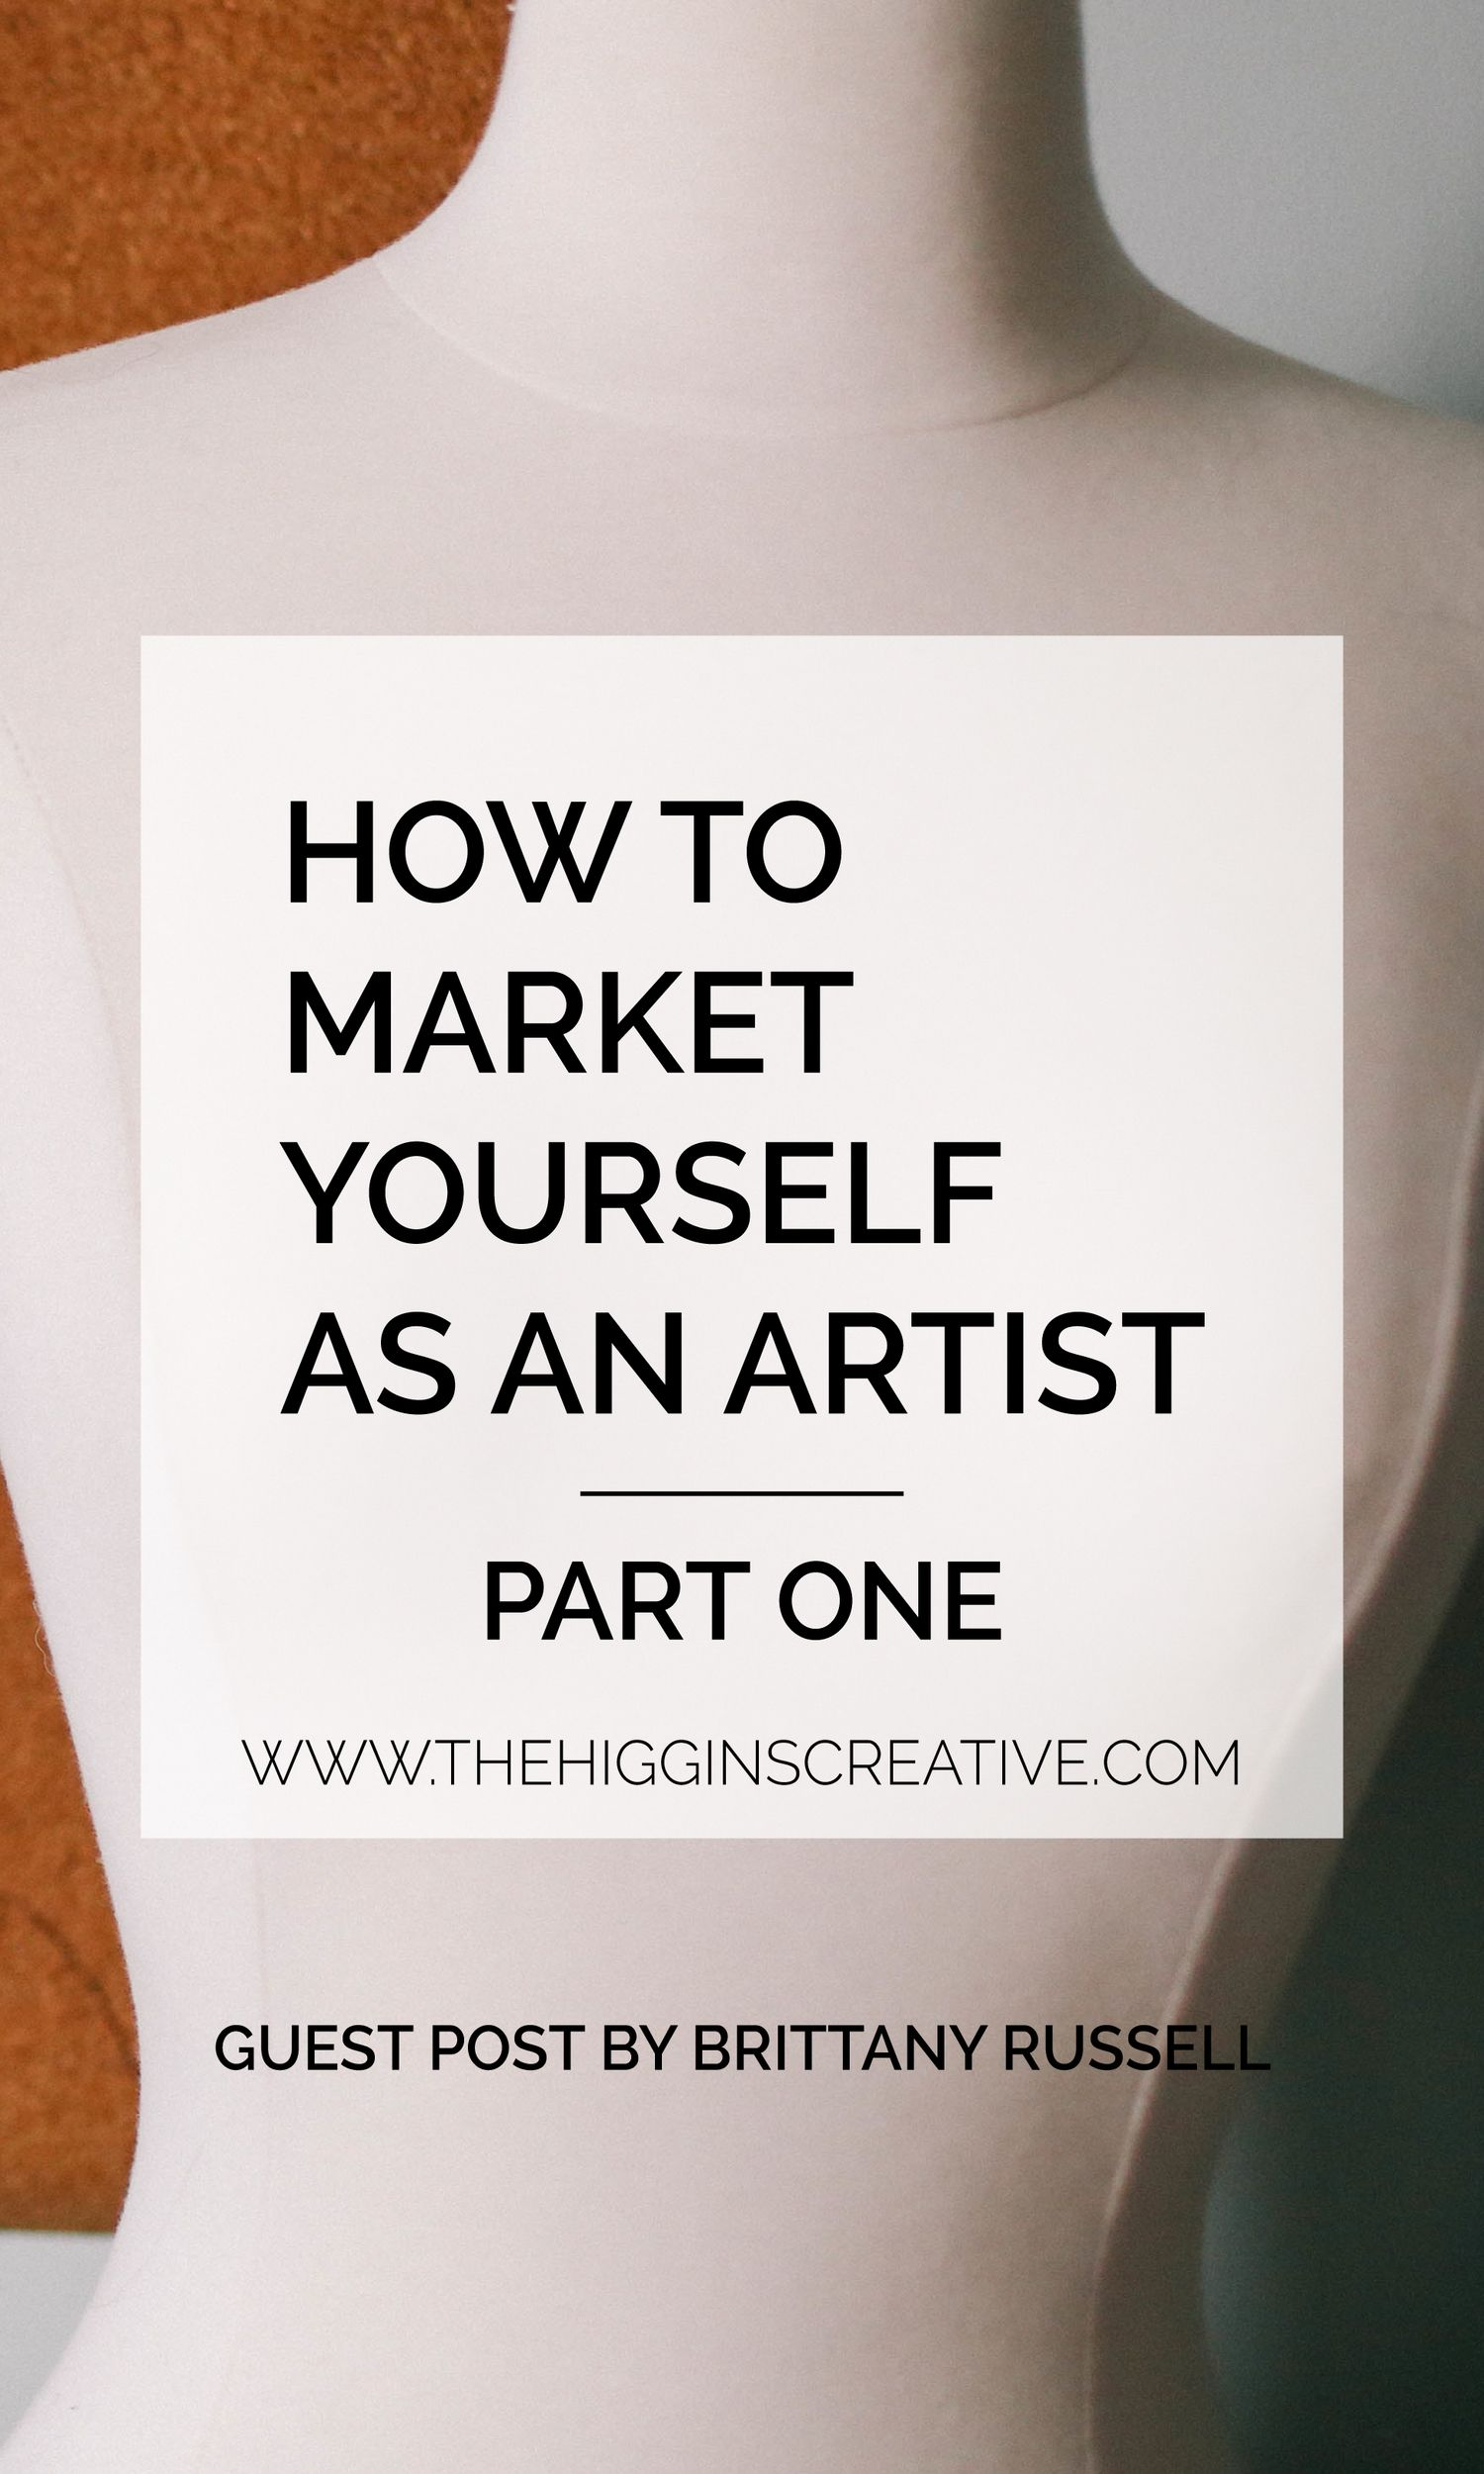 HOW TO MARKET YOURSELF AS AN ARTIST | Design art, Creative and Logos